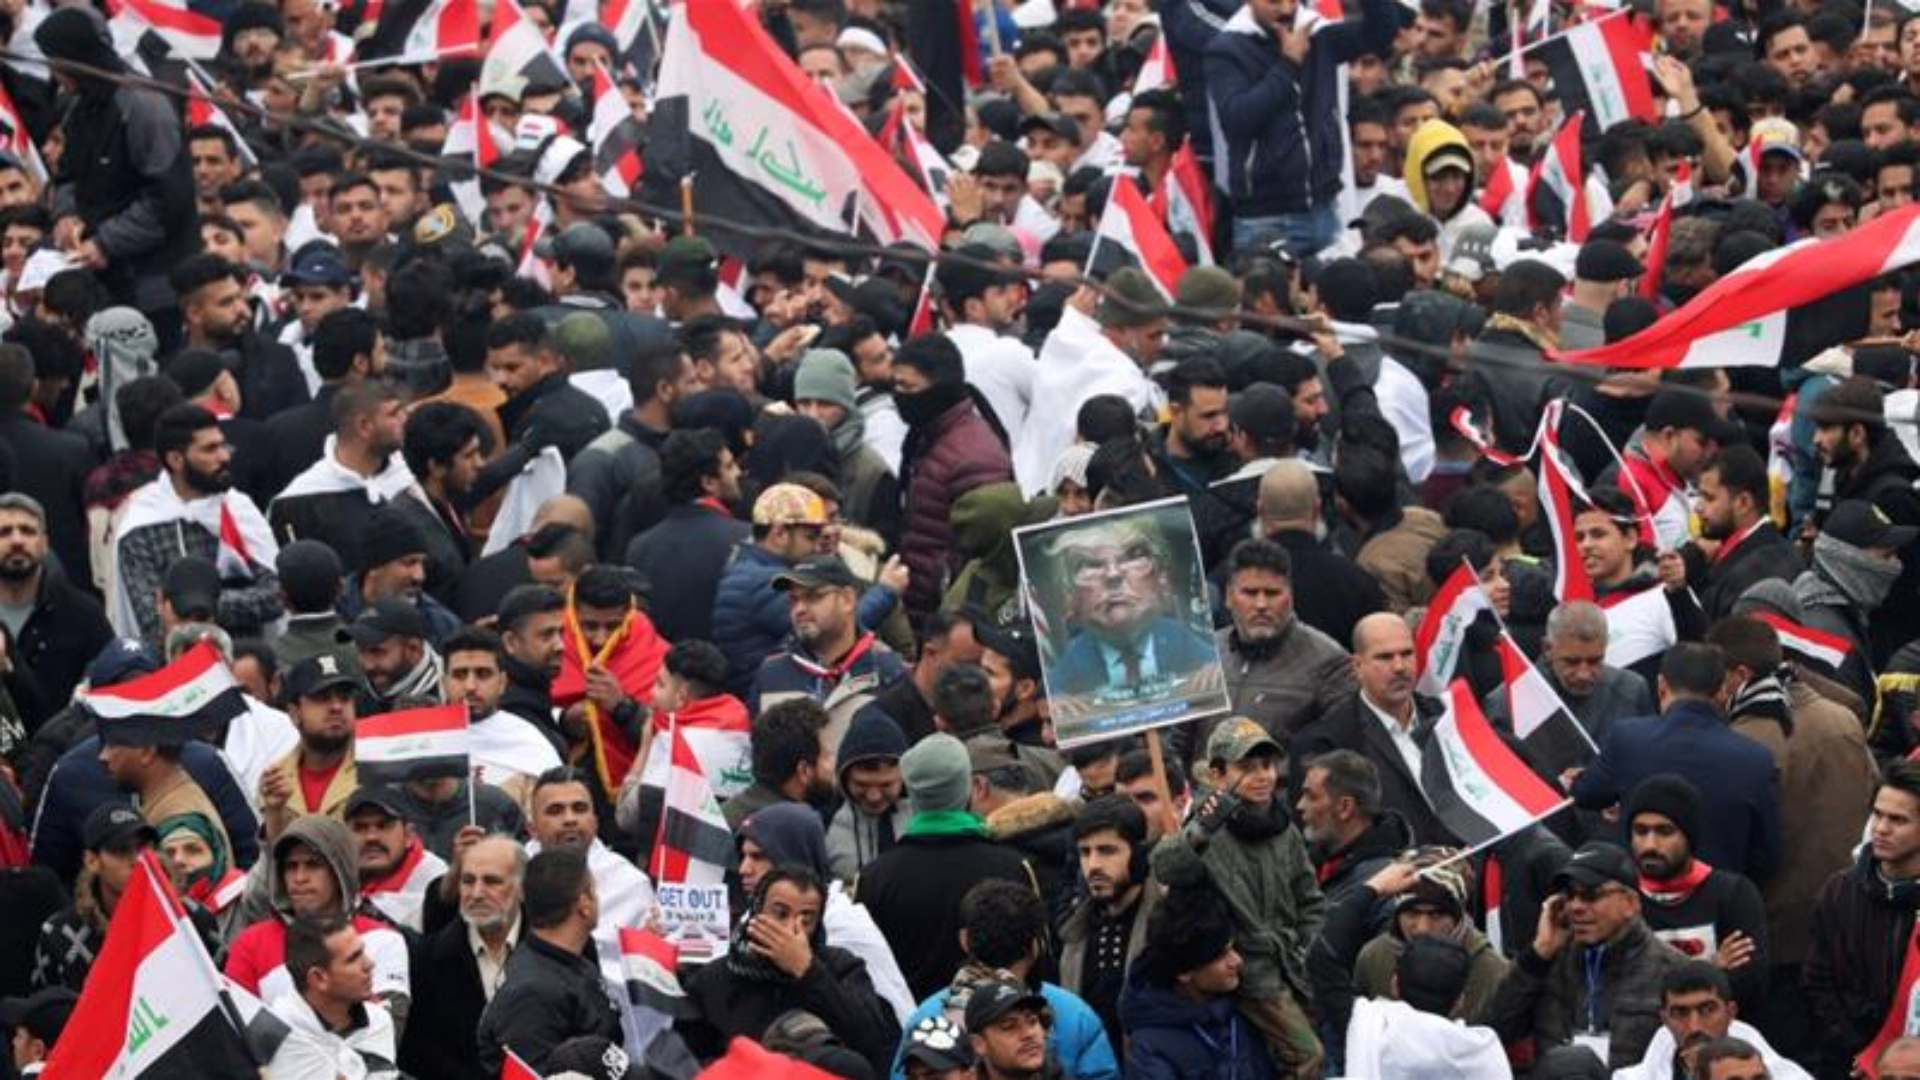 Thousands of Iraqis rally to demand withdrawal of US troops